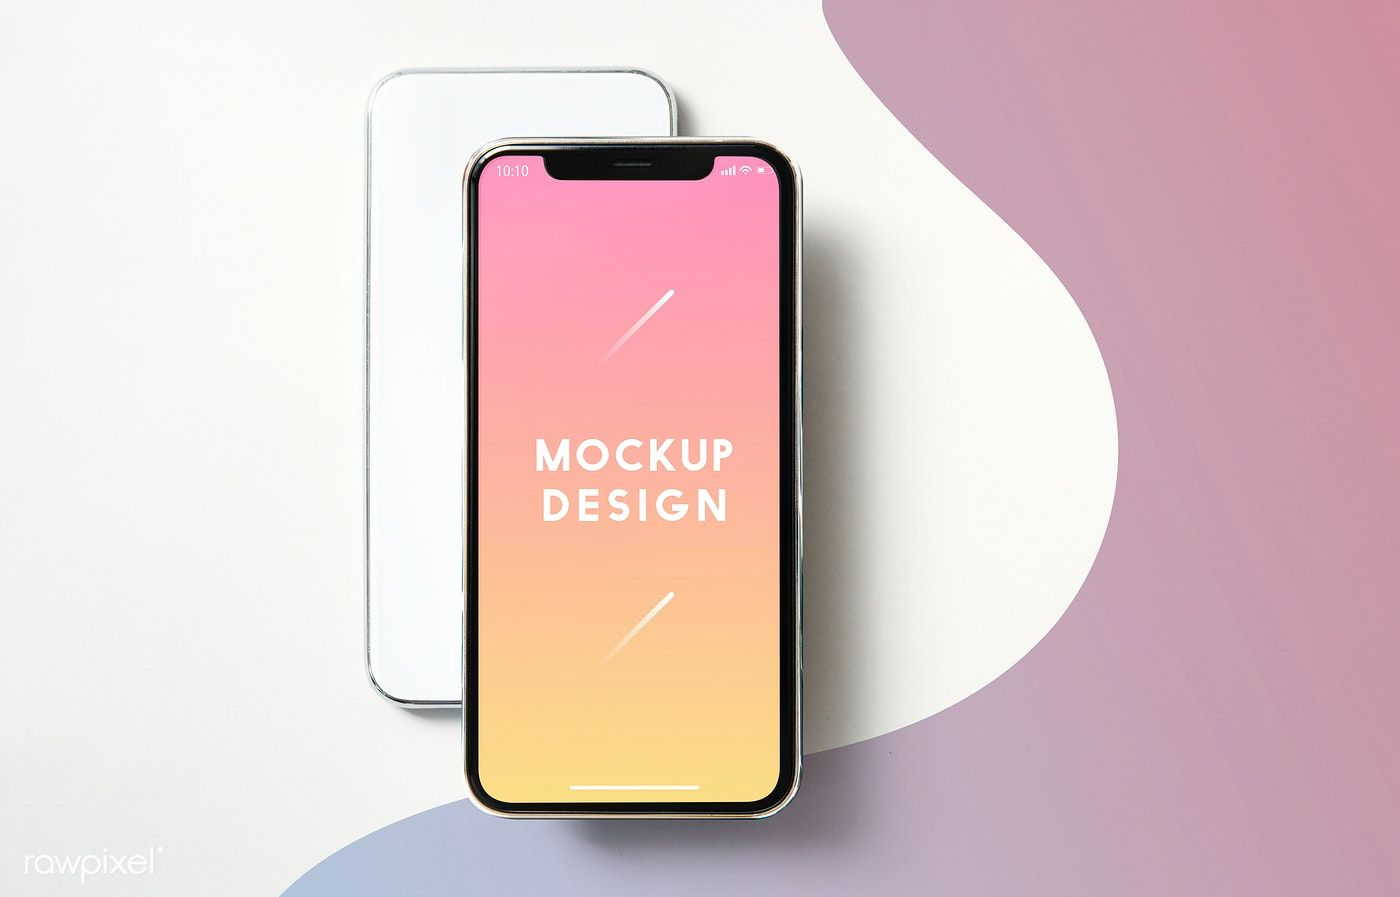 Download Premium Psd Of High Quality Mobile Phone Mockup Design 527501 Phone Mockup Phone Iphone Mockup